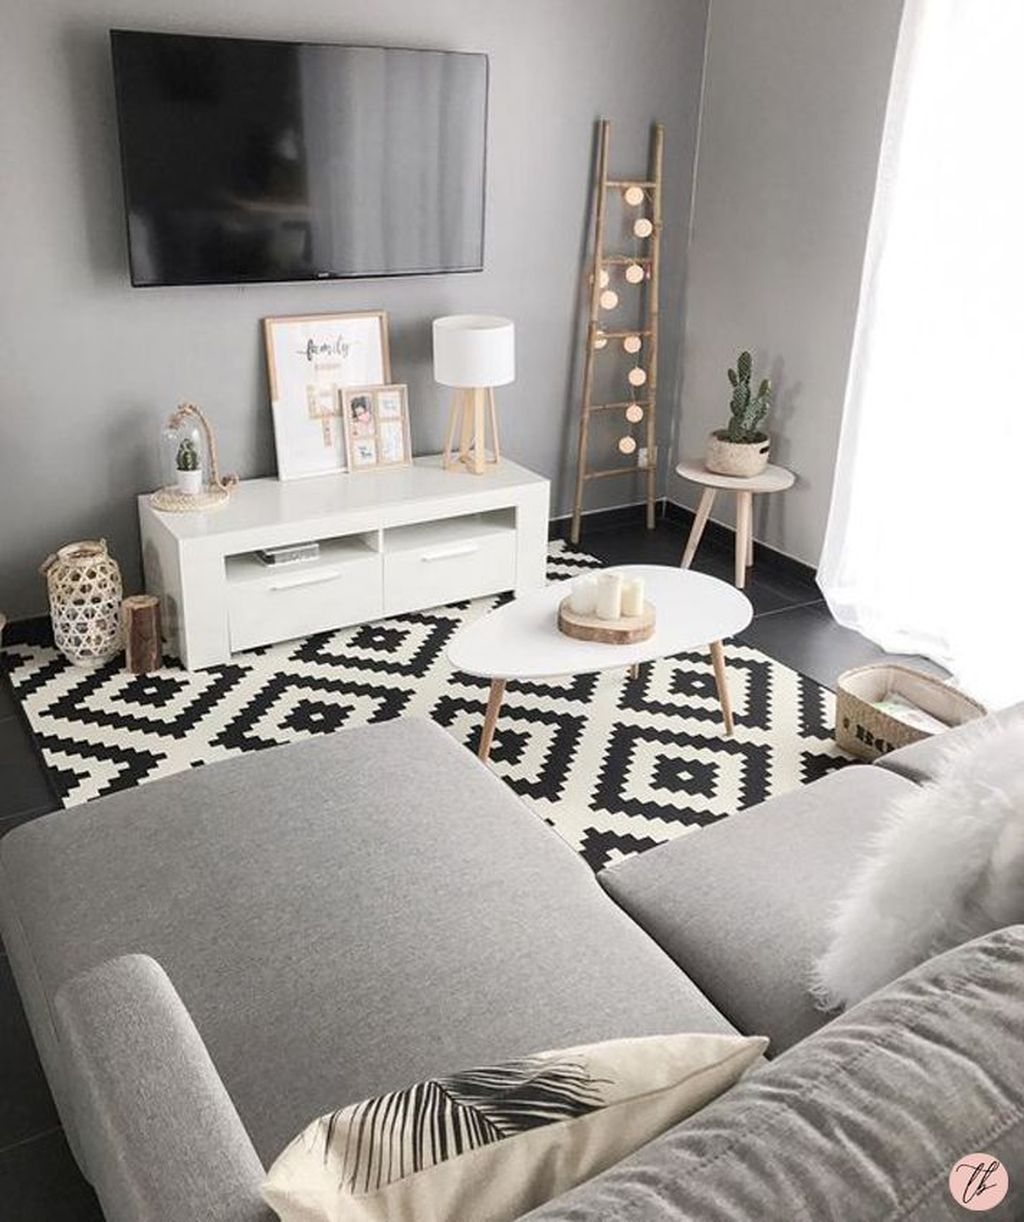 20 Modern Apartment Decorating Ideas On A Budget Small Apartment Living Room Small Living Room Decor Living Room Scandinavian